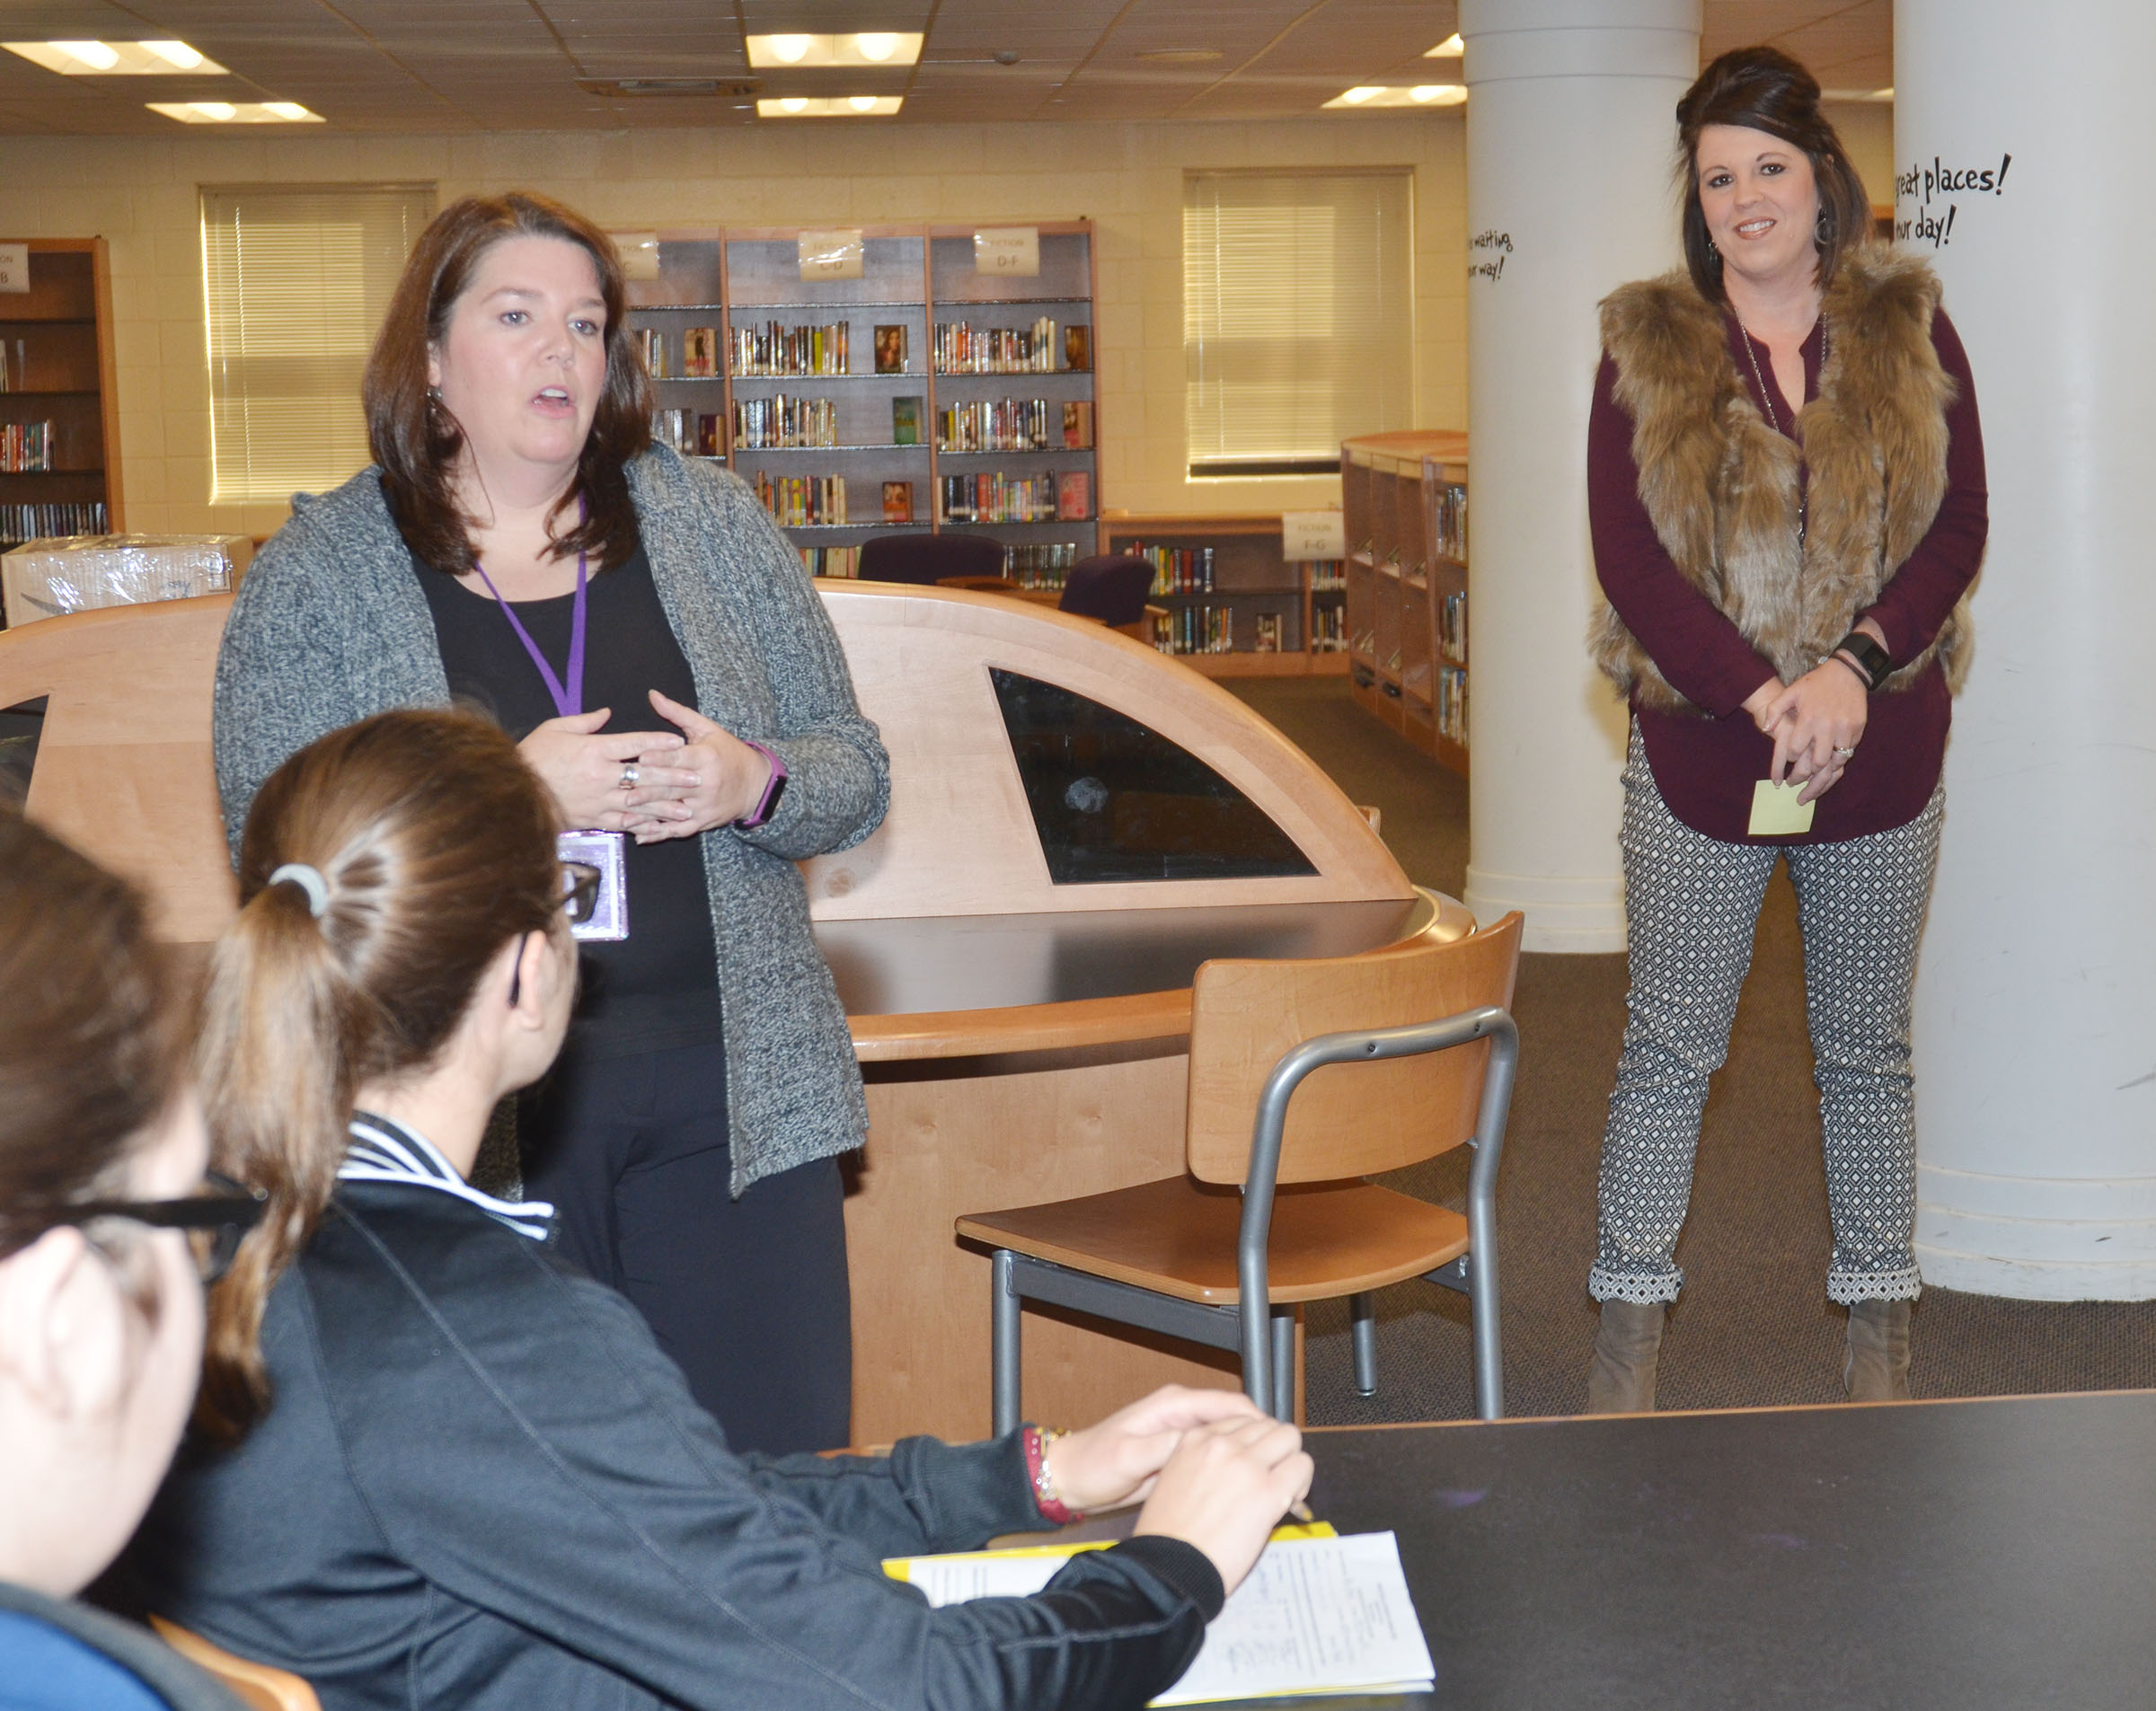 CMS Guidance Counselor Beth Wiedewitsch, at left, and Principal Elisha Rhodes talk to CU education students.